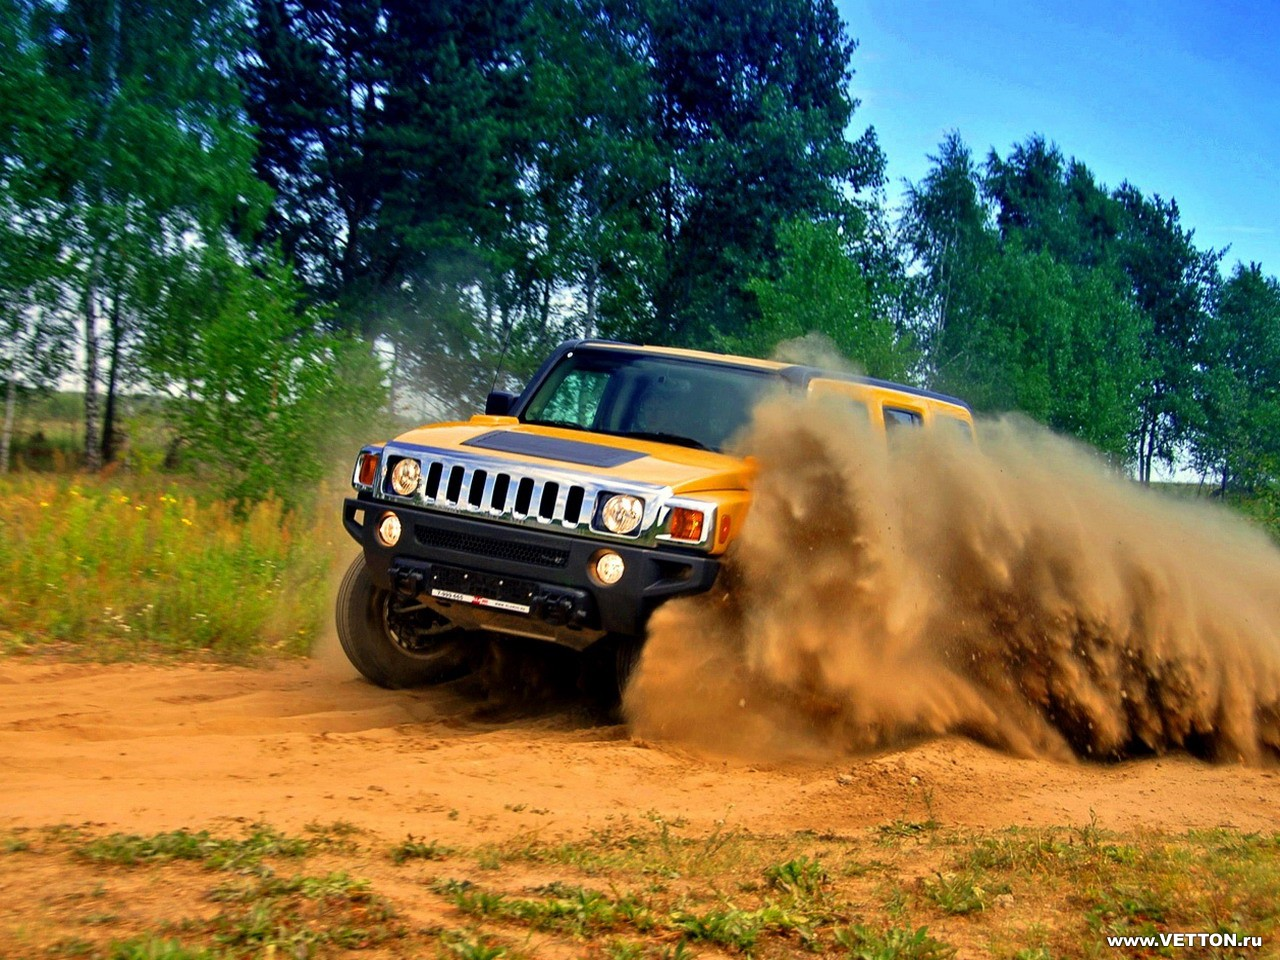 Hummer Wallpaper PC Desktop